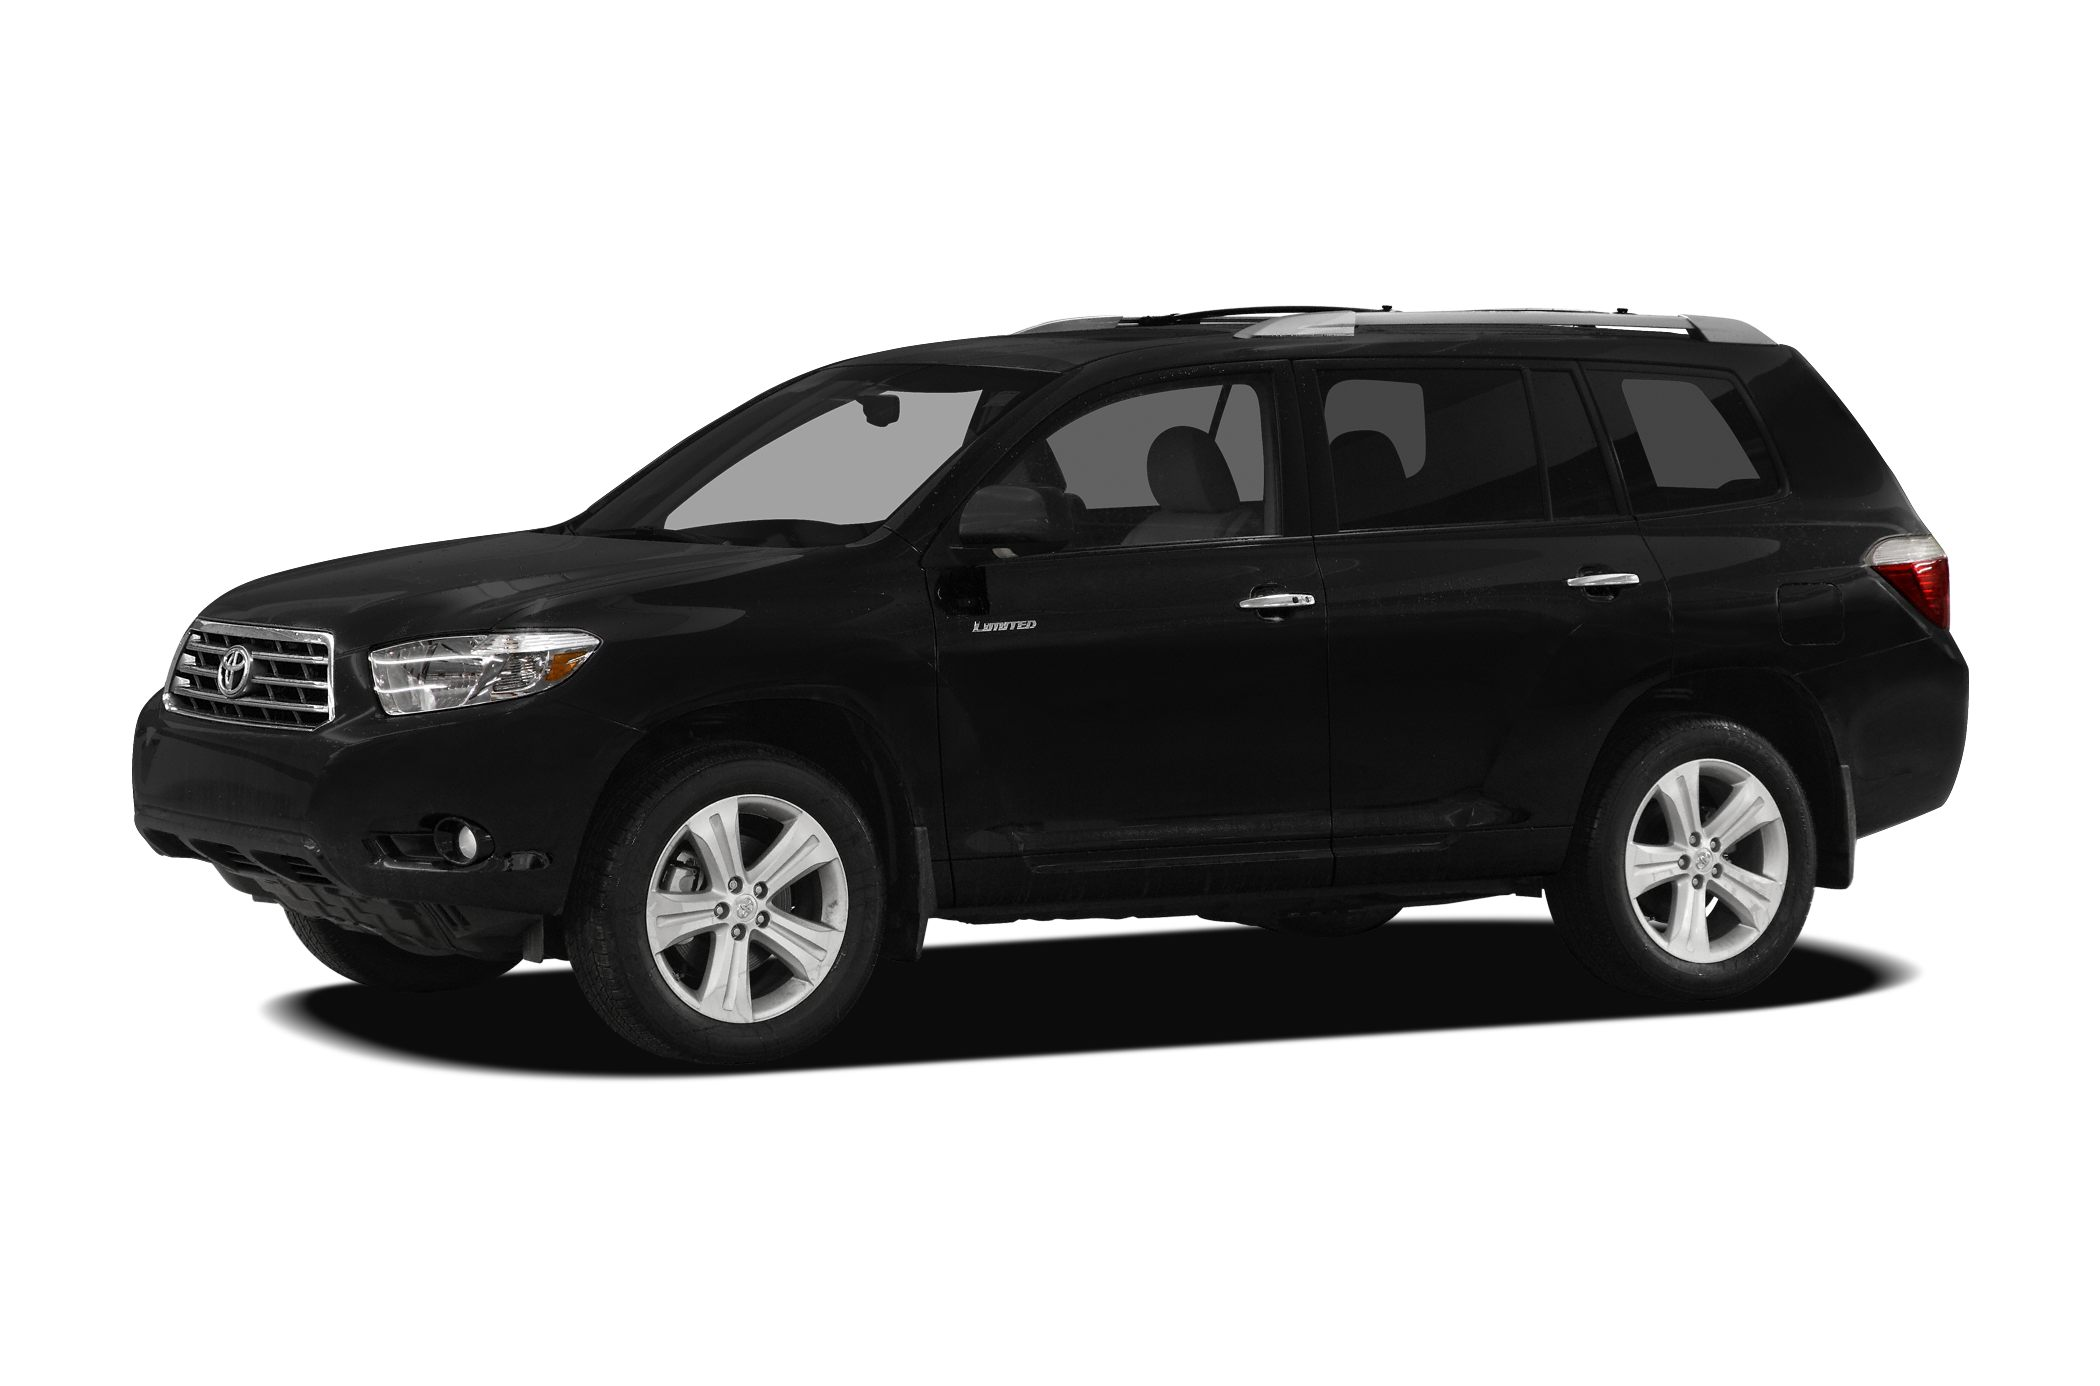 2010 Toyota Highlander Limited SUV for sale in San Diego for $27,586 with 57,260 miles.